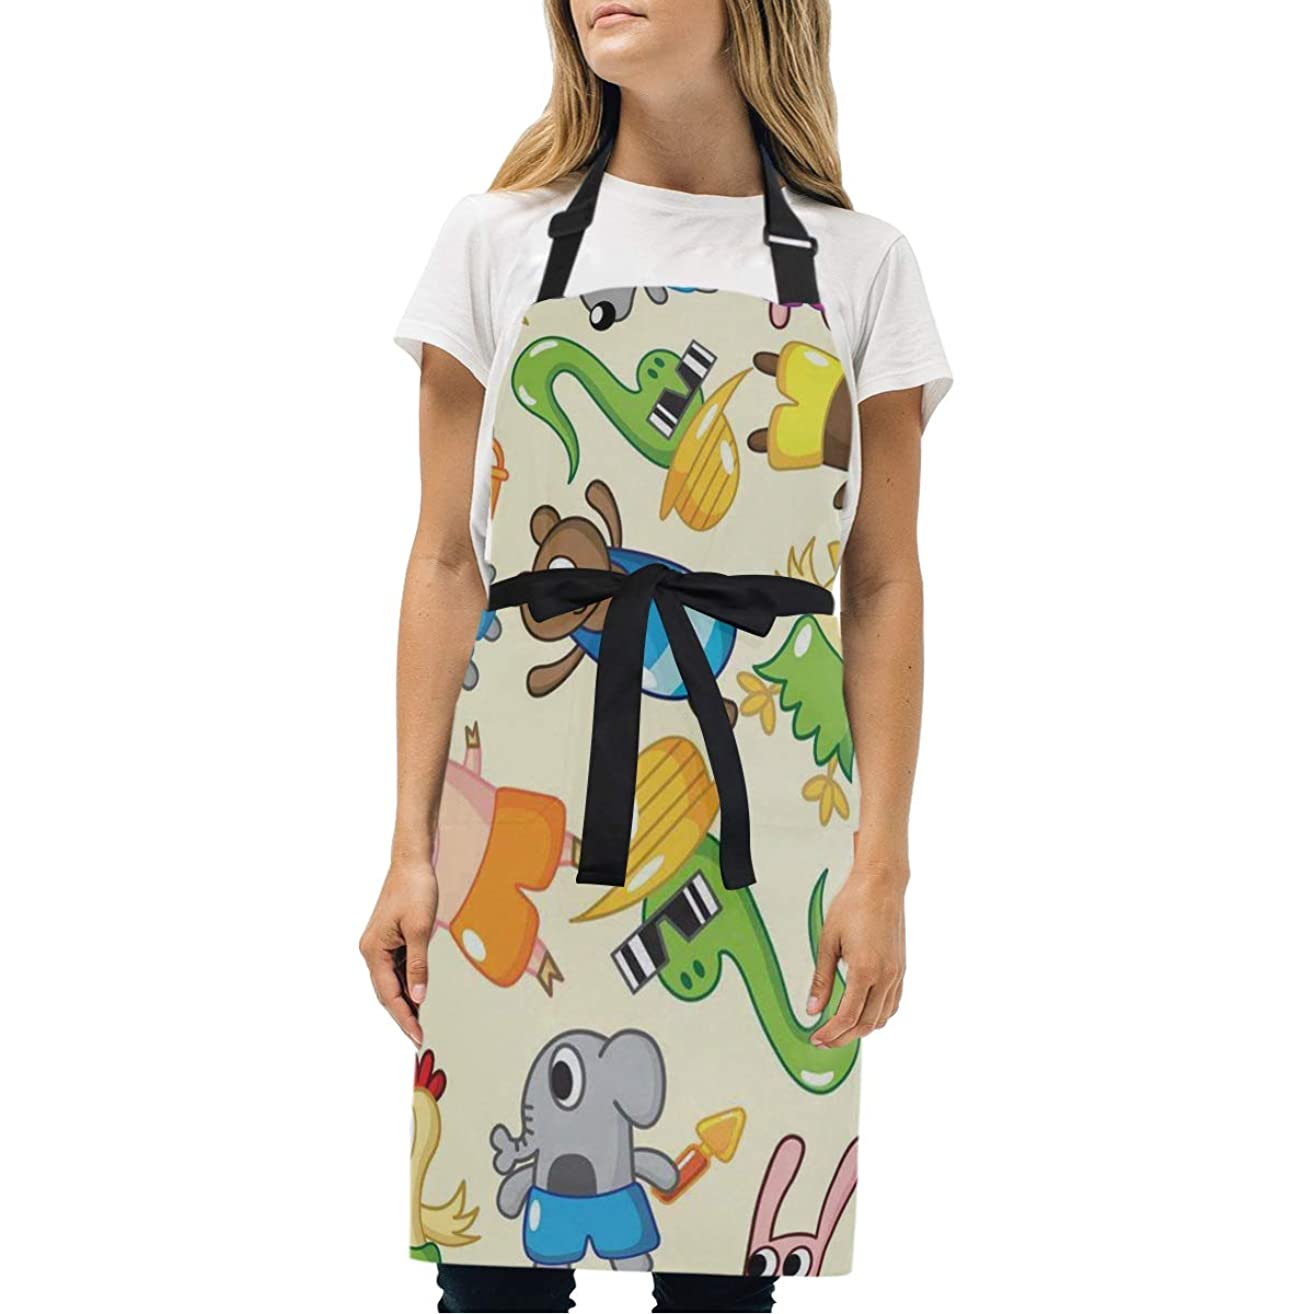 HJudge Womens Aprons Bear Sheep Pig Kitchen Bib Aprons with Pockets Adjustable Buckle on Neck